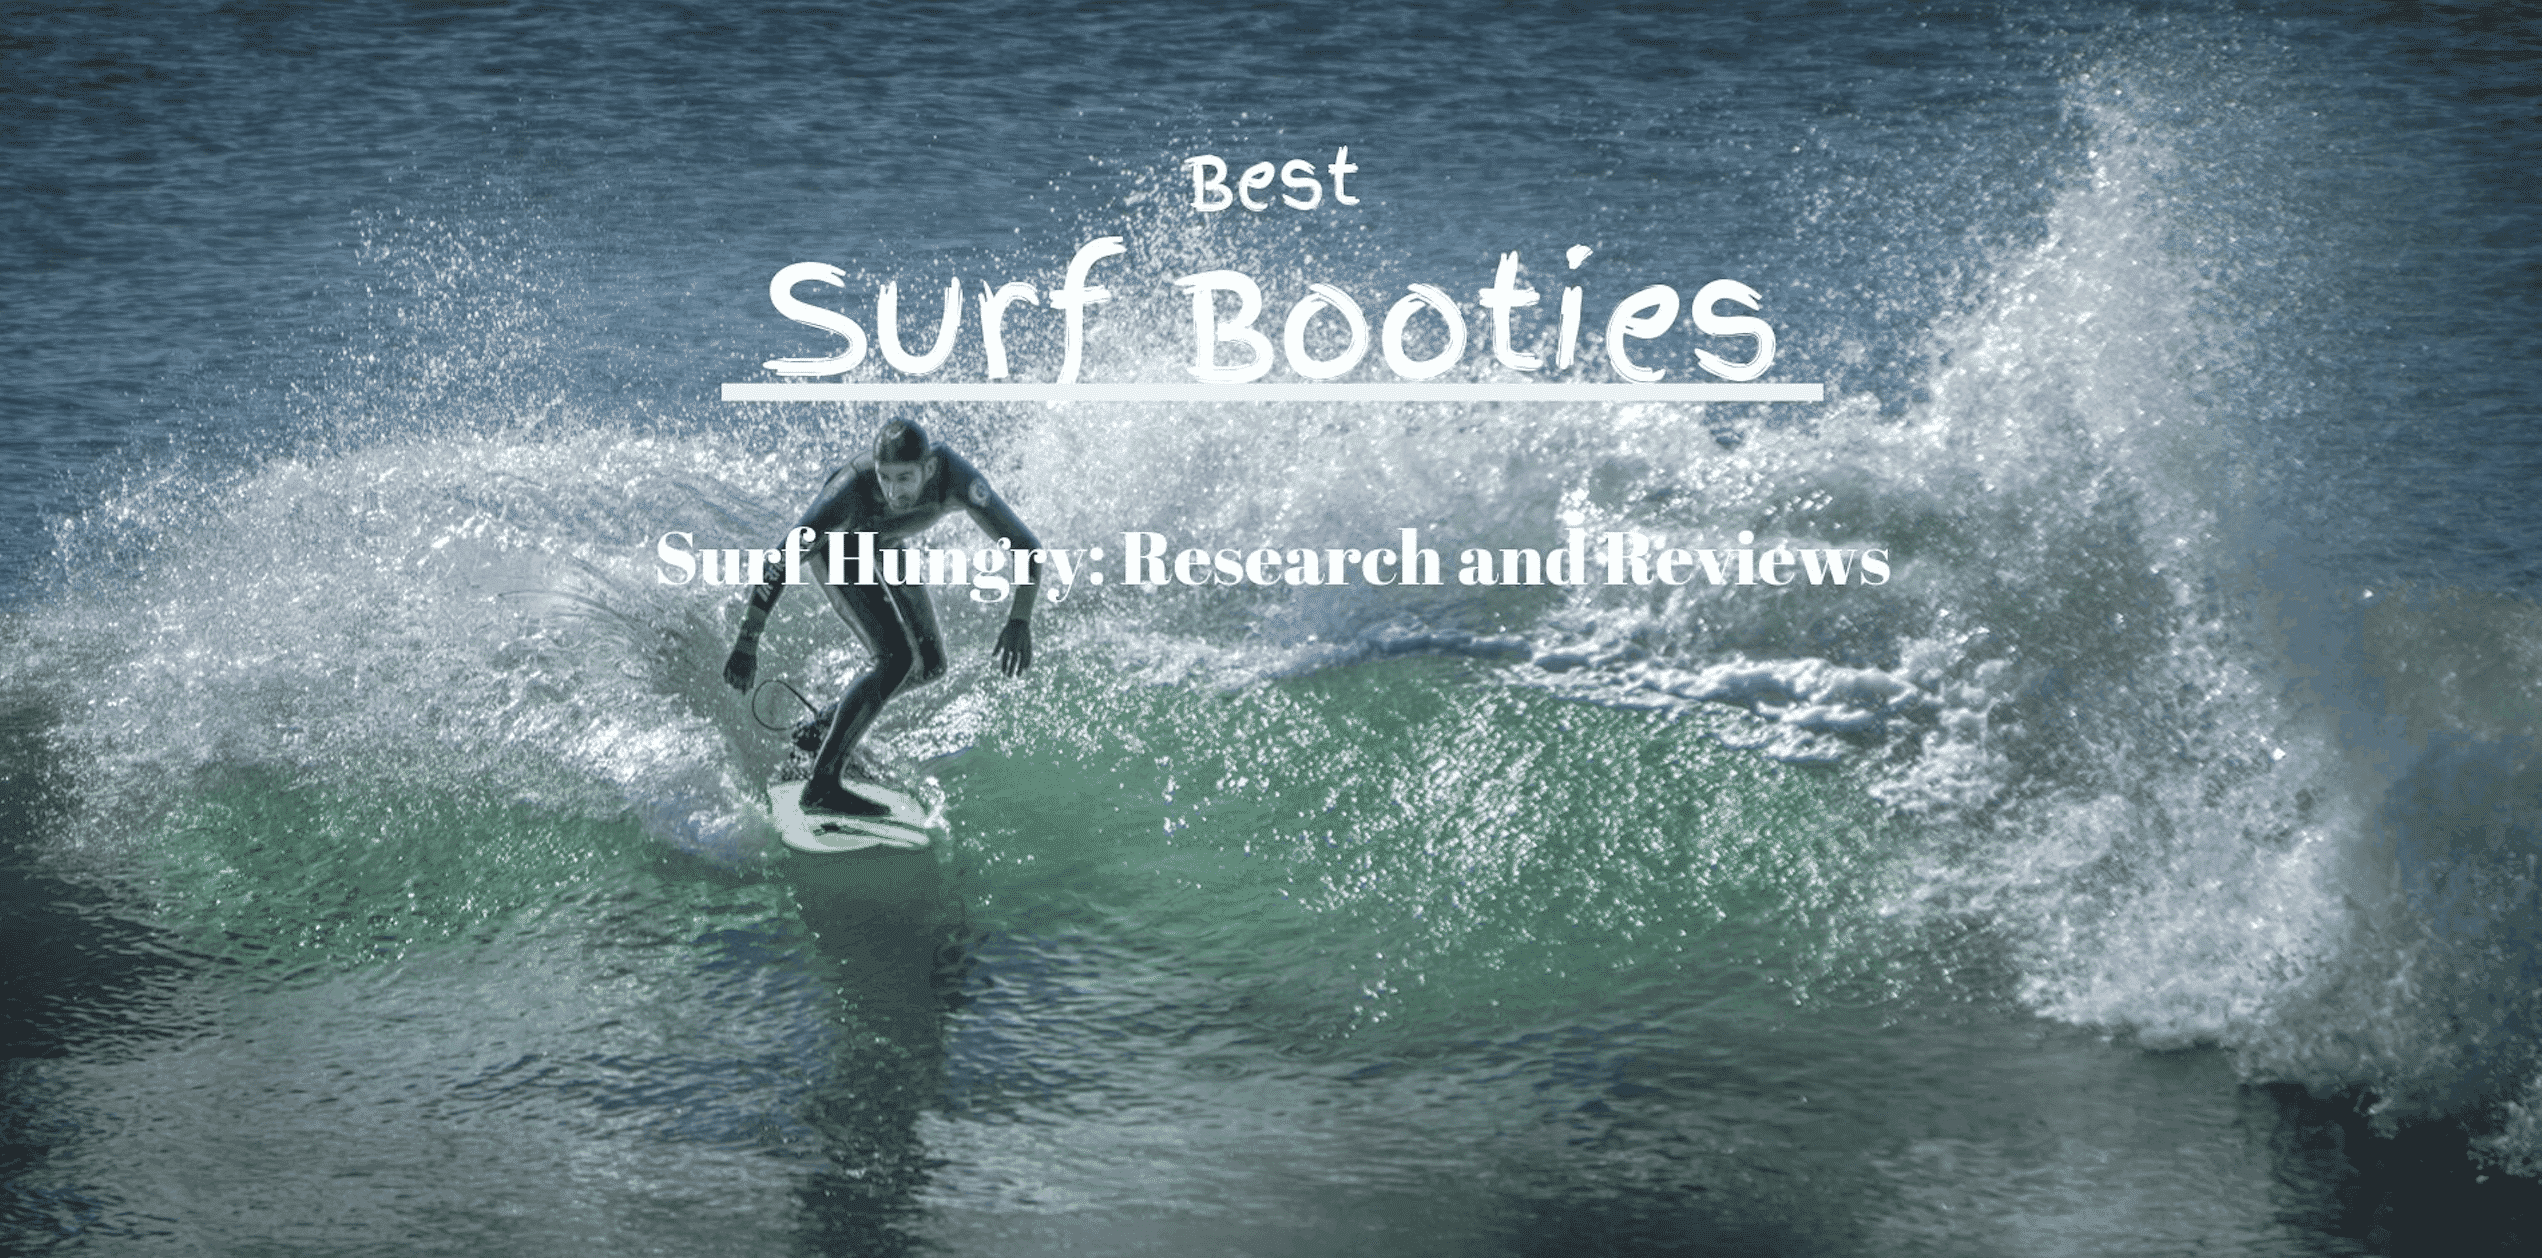 best surf booties